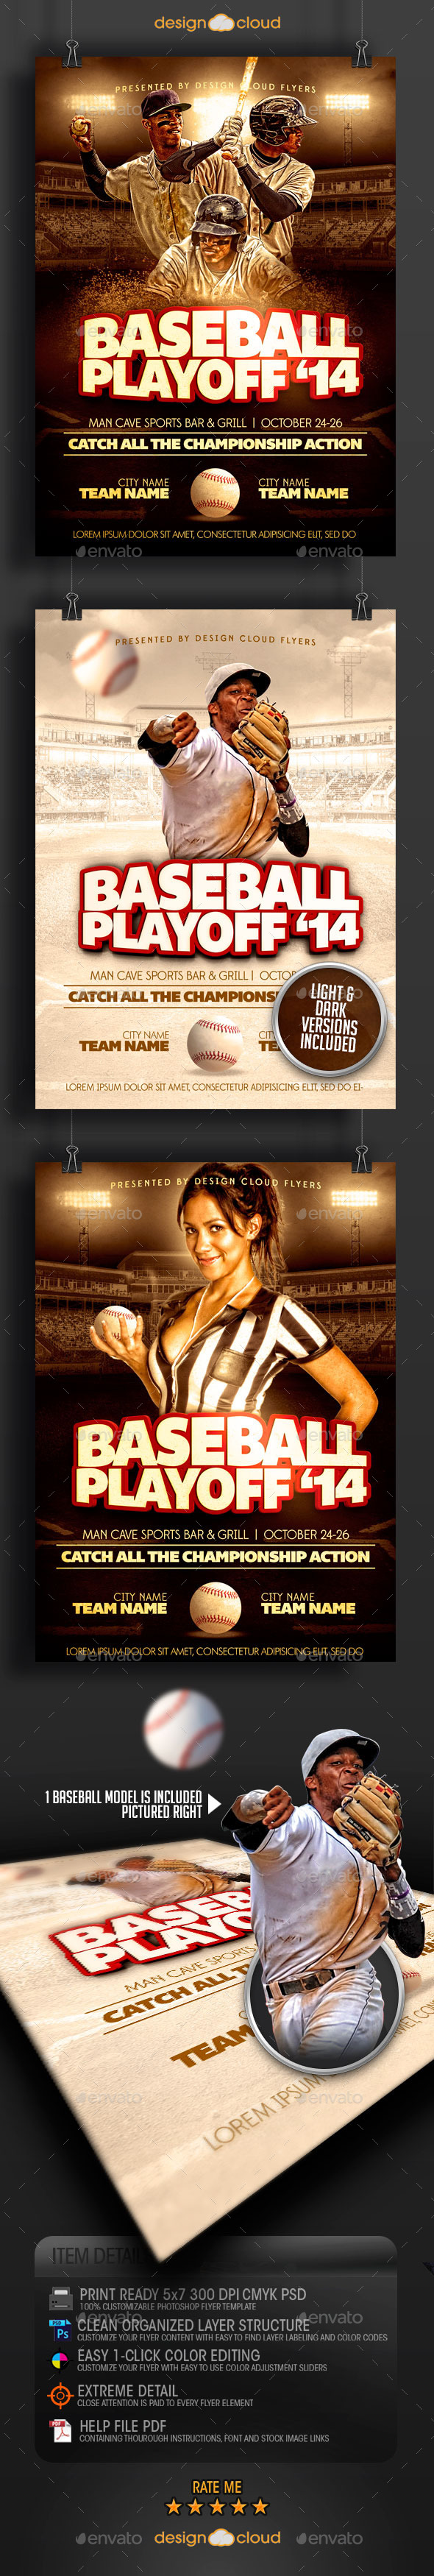 GraphicRiver Baseball Playoff 14 Flyer Template 9201081